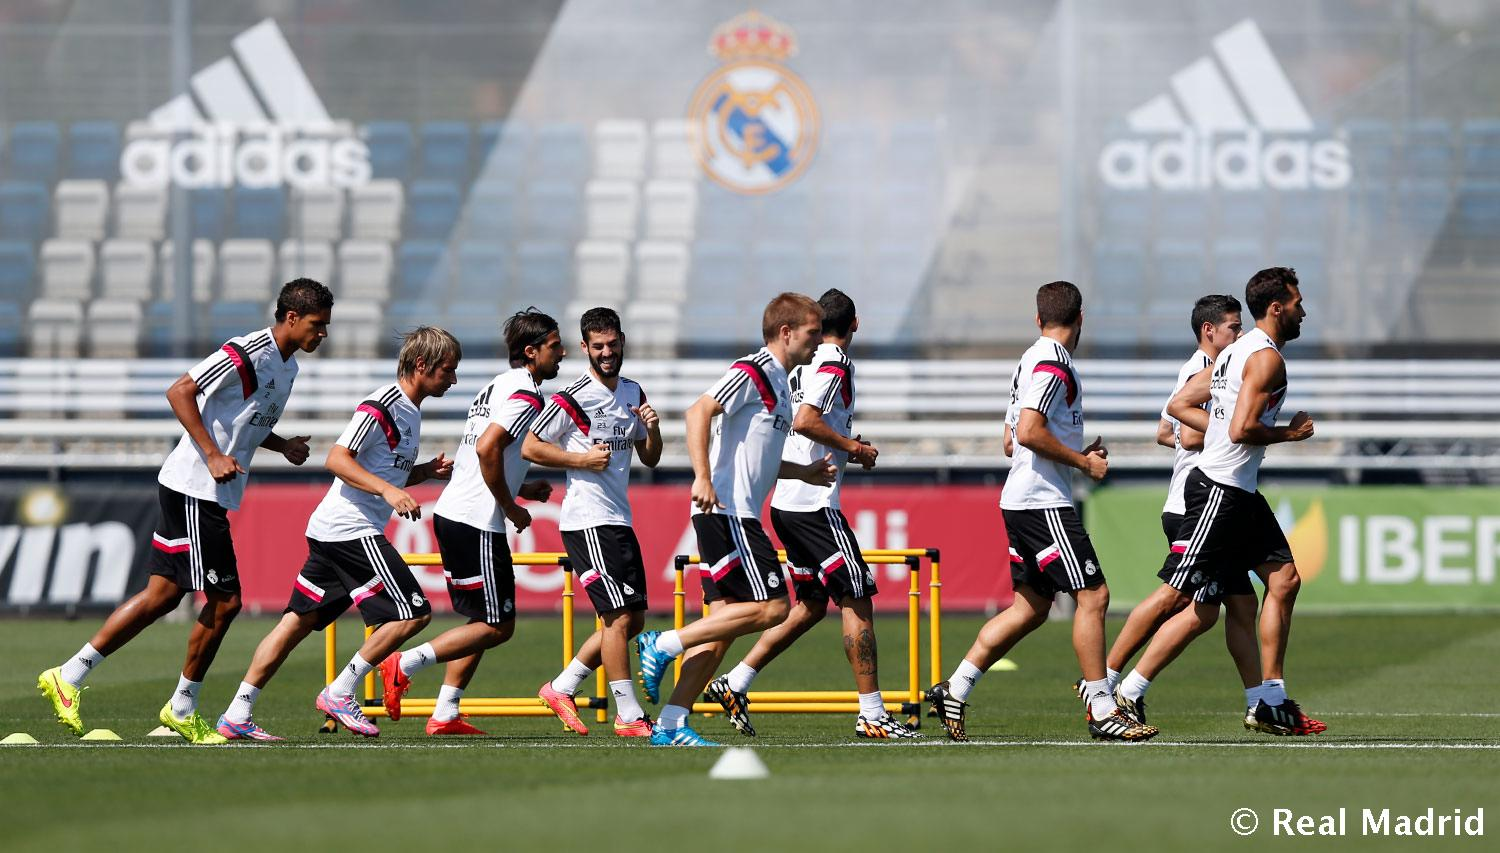 Real Madrid - Entrenamiento del Real Madrid - 20-08-2014